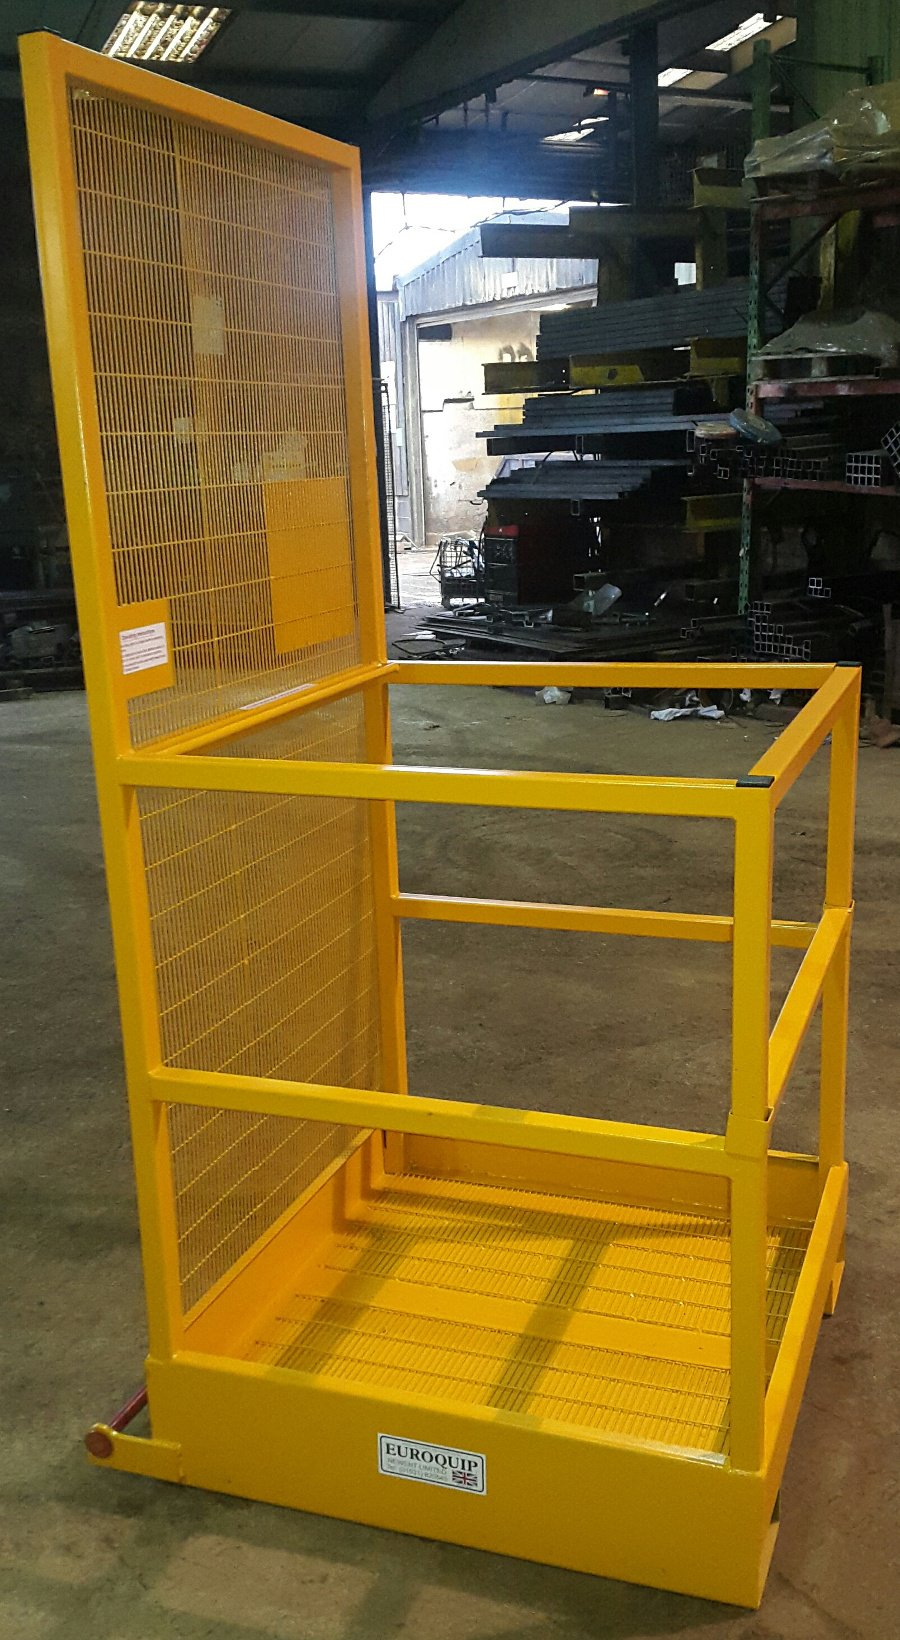 Forklift Attachments Such As Forklift Tipping Skips